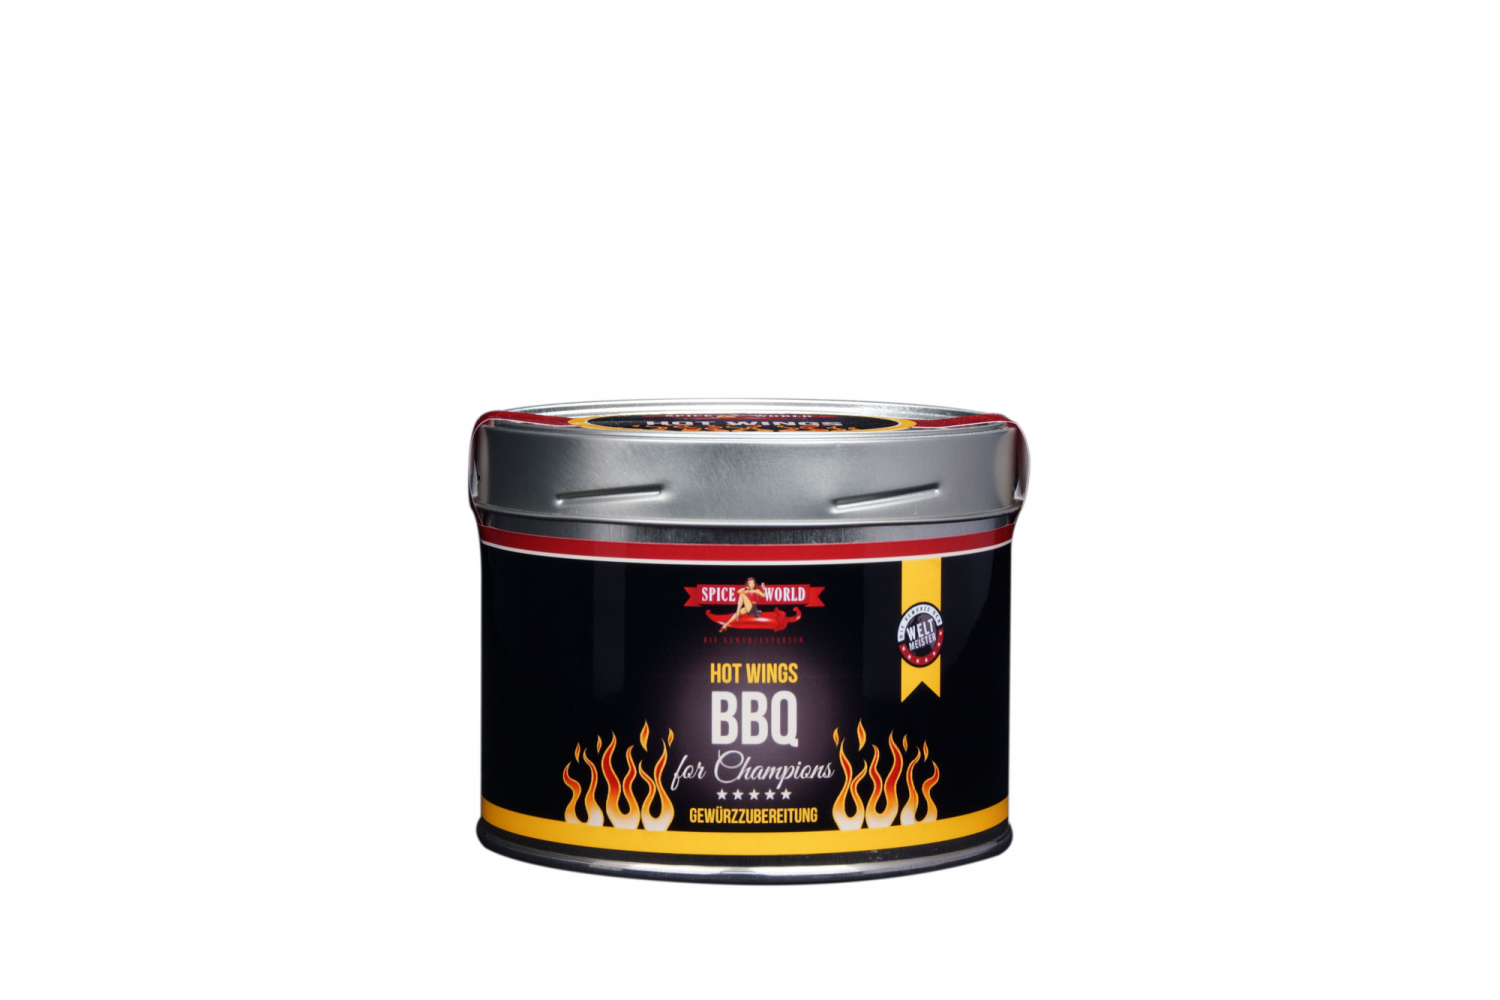 Barbecue-for-Champions Hot Wings - Geflügel , 550ml Gastro-Dos 550ml Gastro-Dose